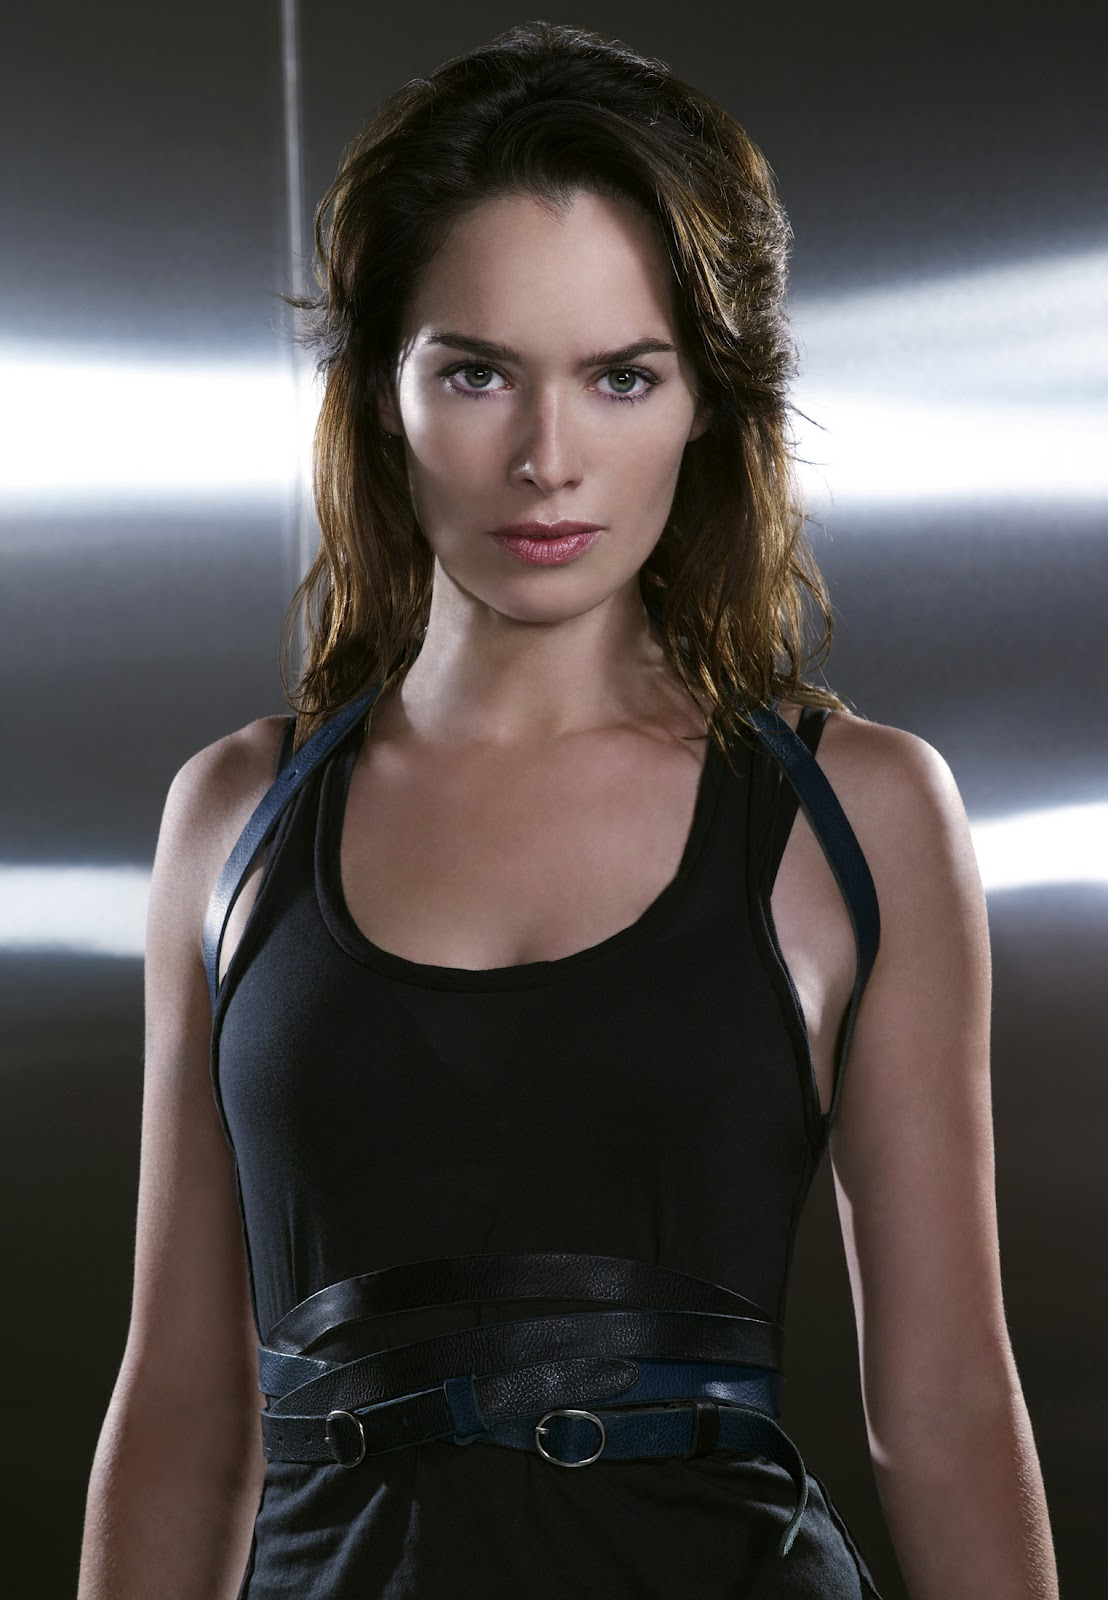 http://3.bp.blogspot.com/-epzNiSpvdOs/T7l40wgAbaI/AAAAAAAAAP4/gluEMvOKGI4/s1600/terminator-the-sarah-connor-chronicles-lena-headey.jpg